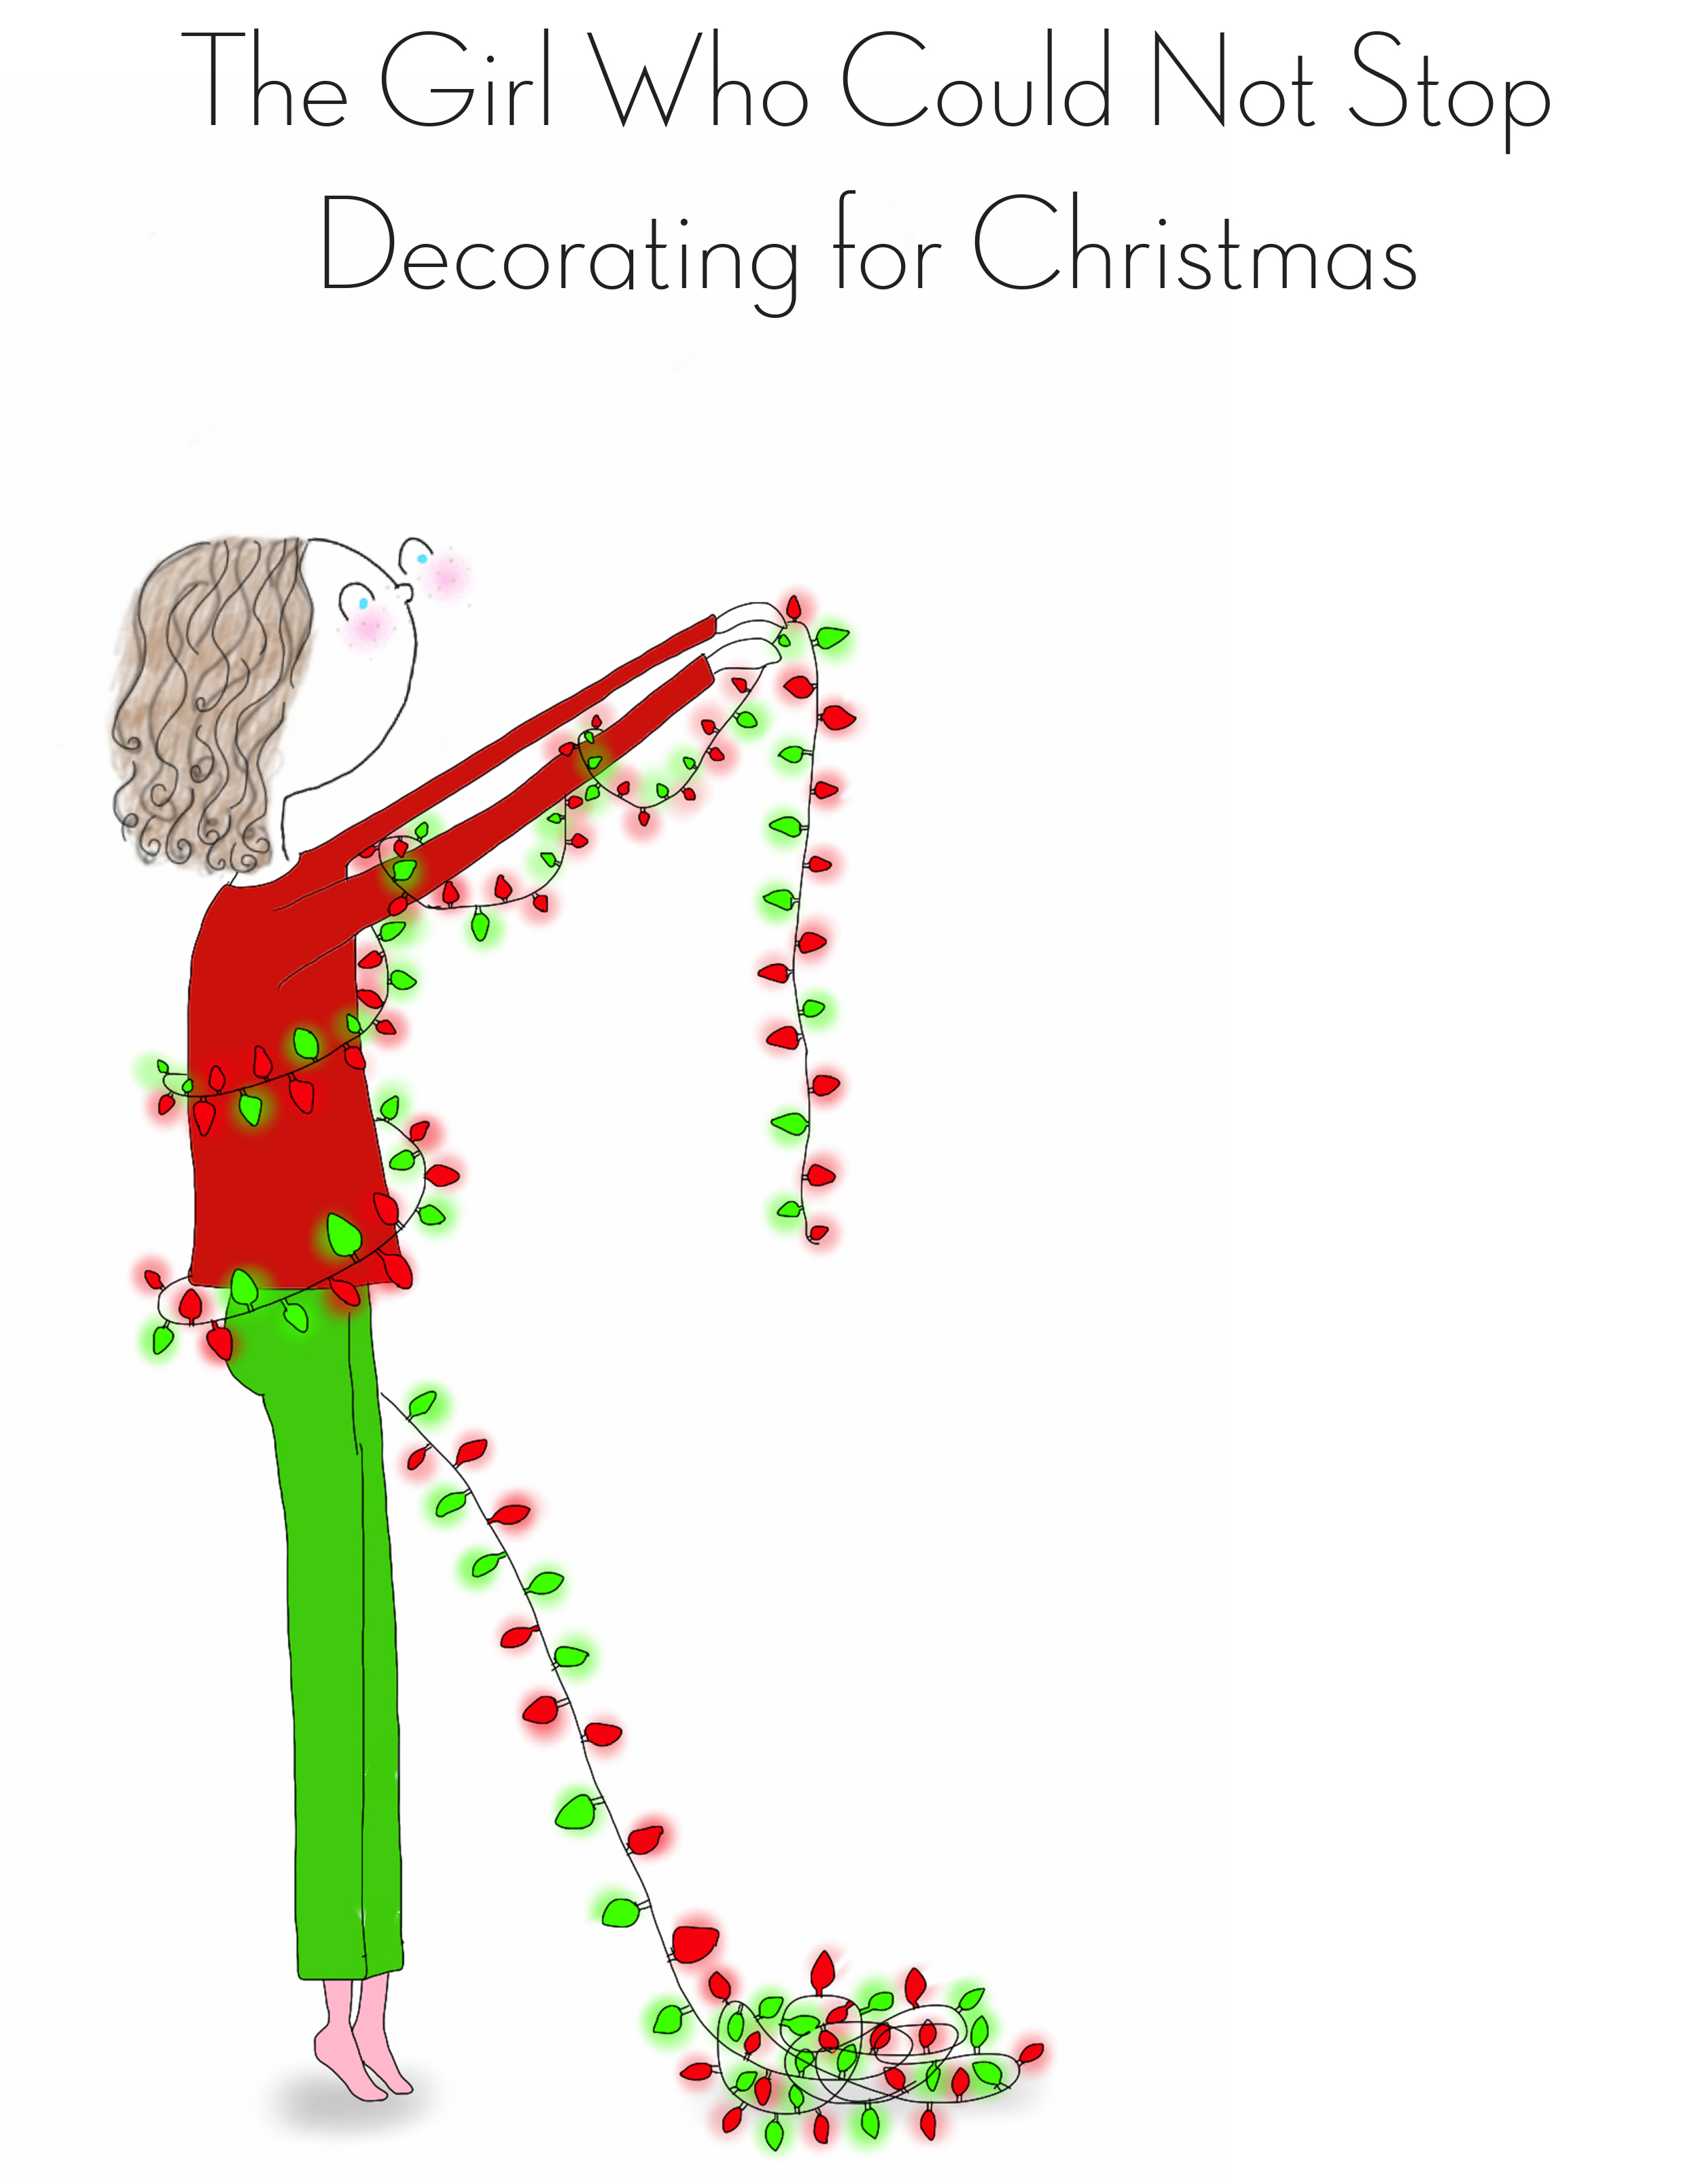 The Girl Who Could Not Stop Decorating for Christmas-1.jpg